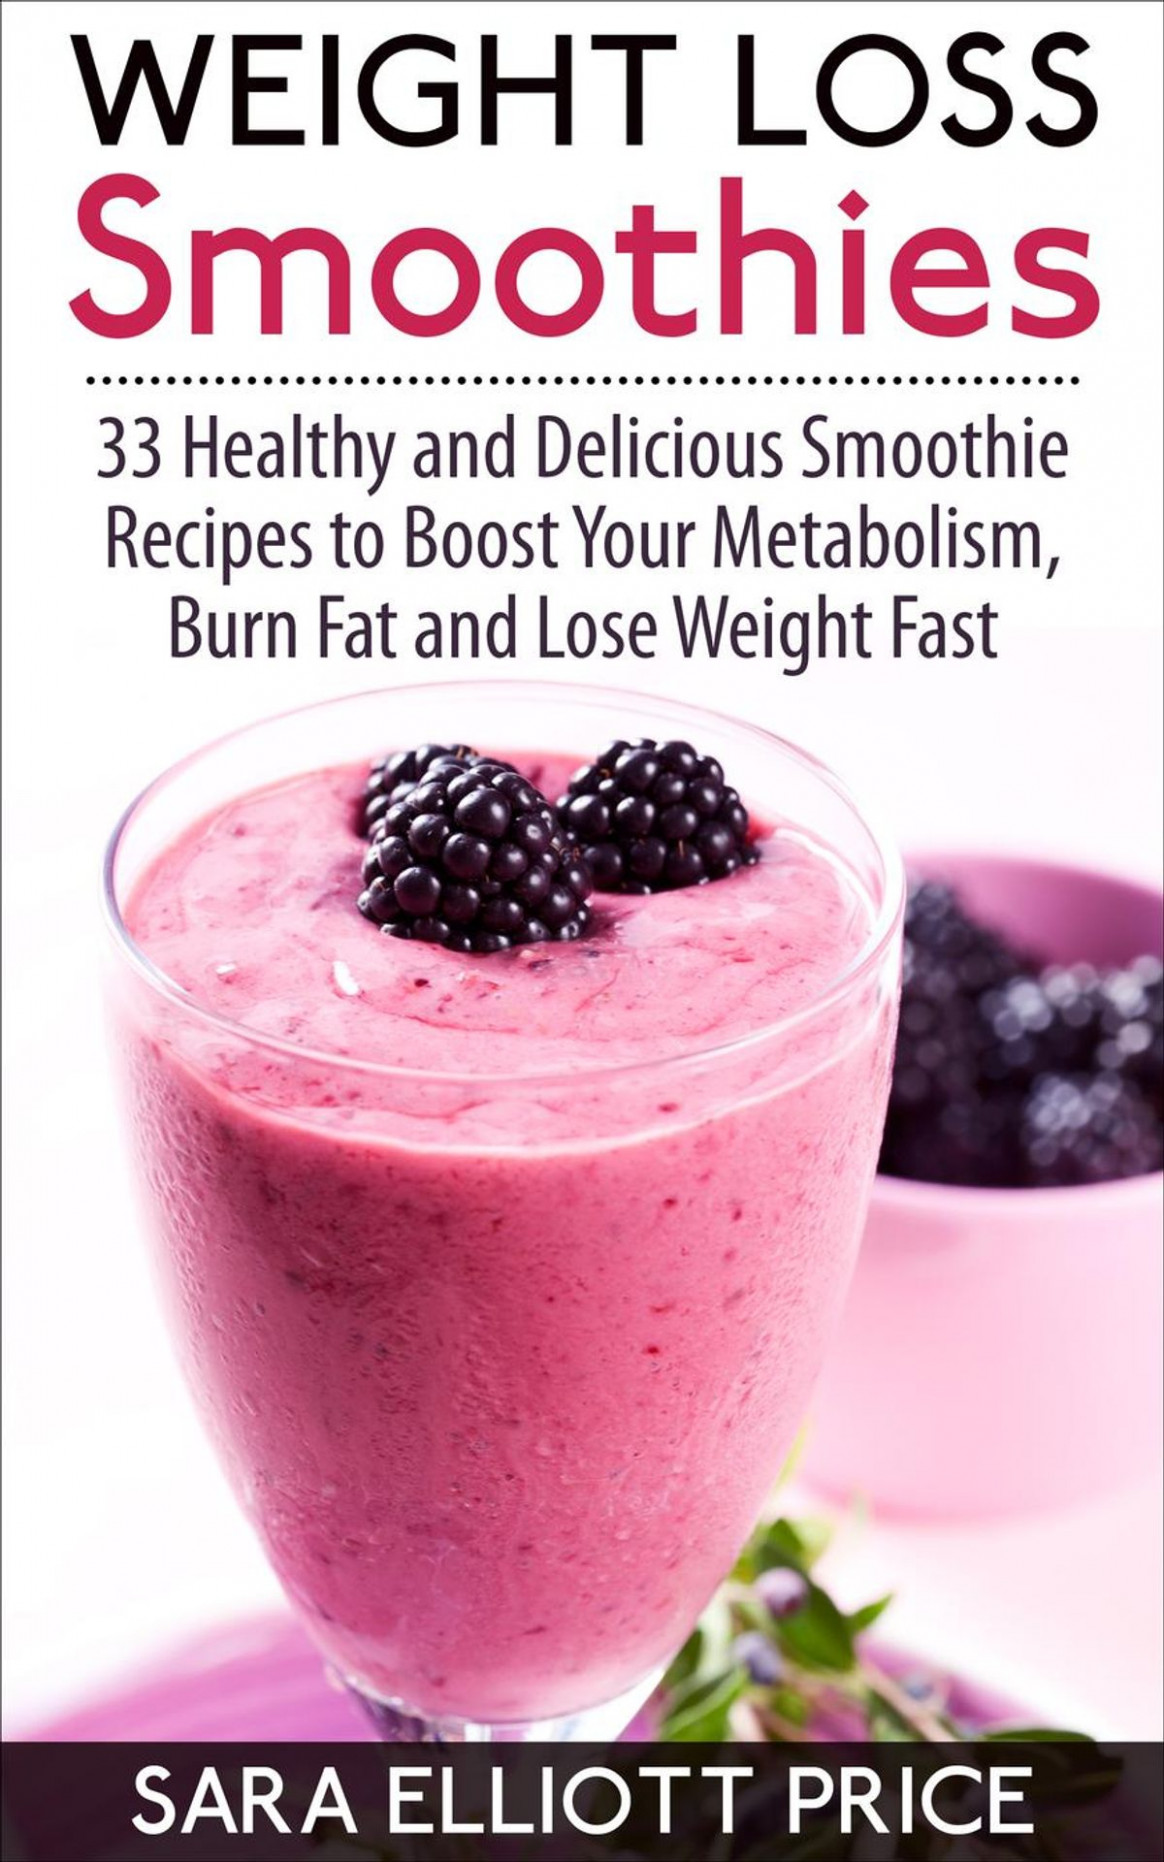 Weight Loss Smoothies: 15 Healthy and Delicious Smoothie Recipes to Boost  Your Metabolism, Burn Fat and Lose Weight Fast ebook by Sara Elliott Price  - ..